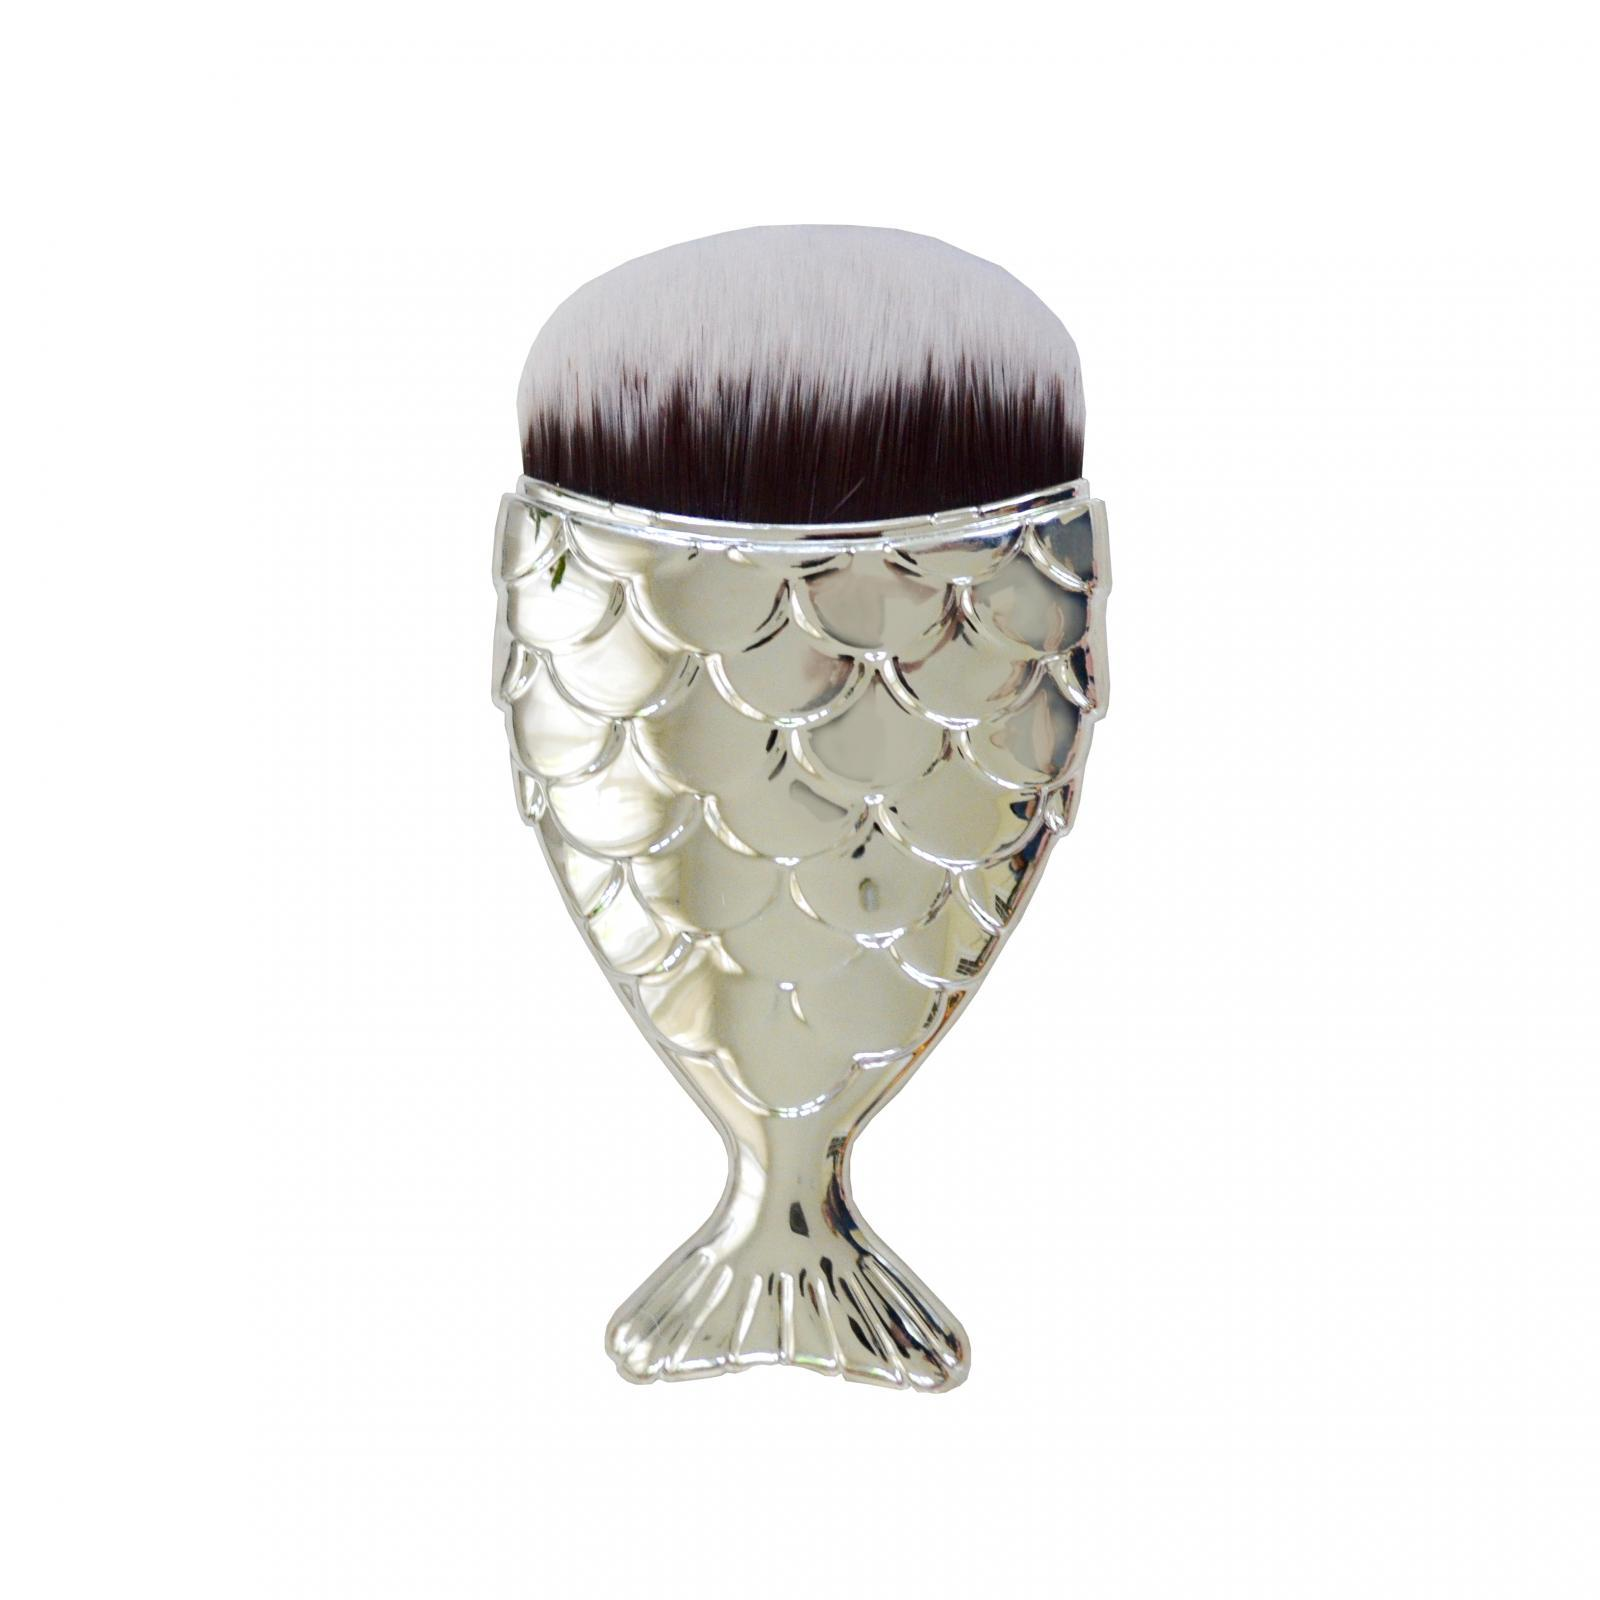 Mermaid Makeup Brush - Silver